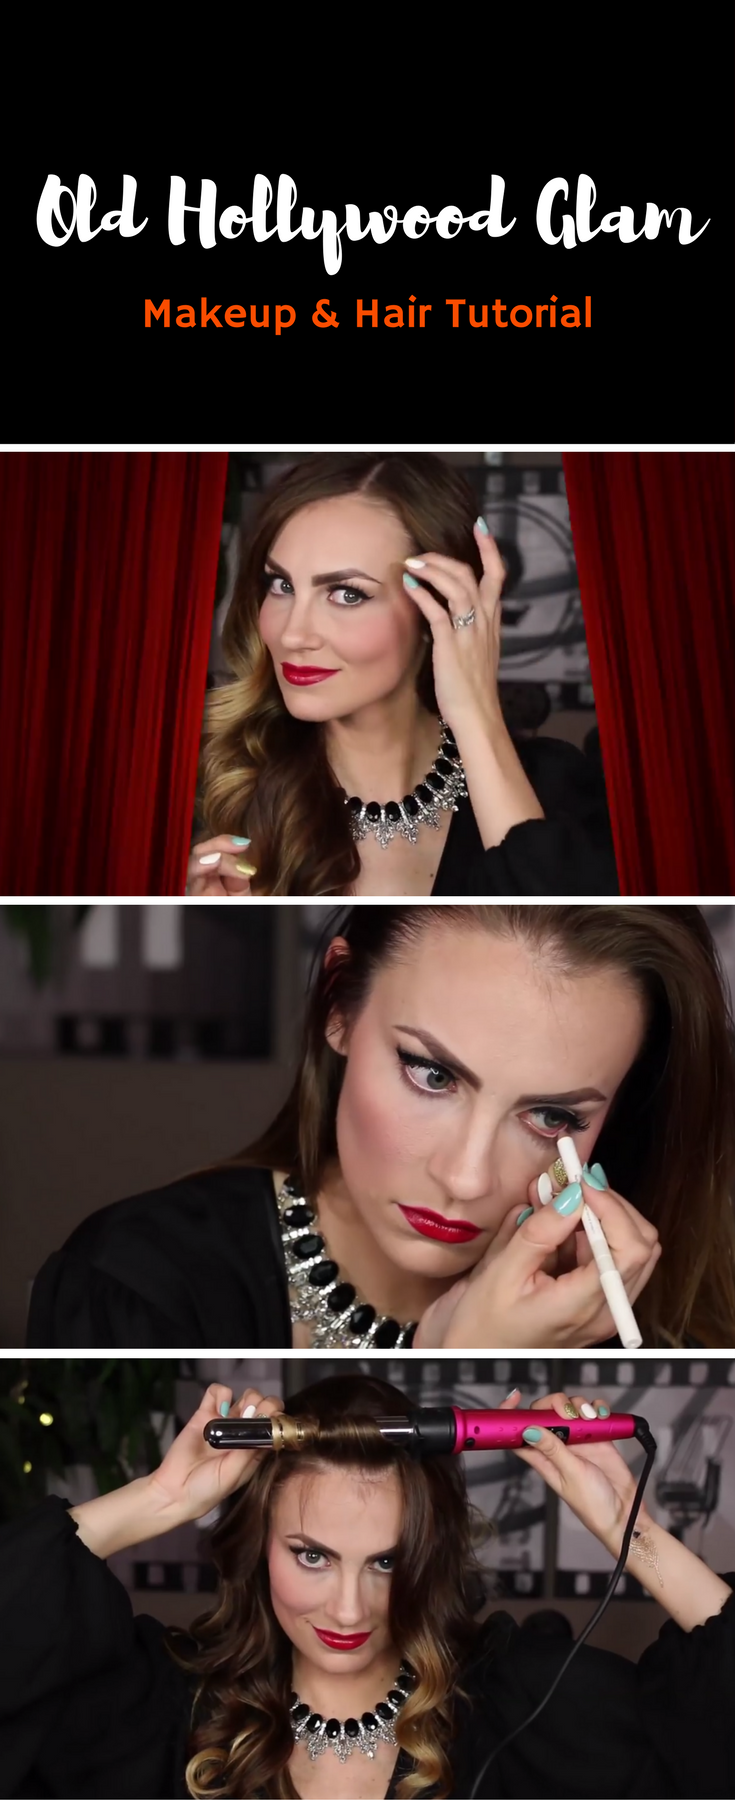 VIDEO: Old Hollywood Glam | Hair and Makeup <3 | Old